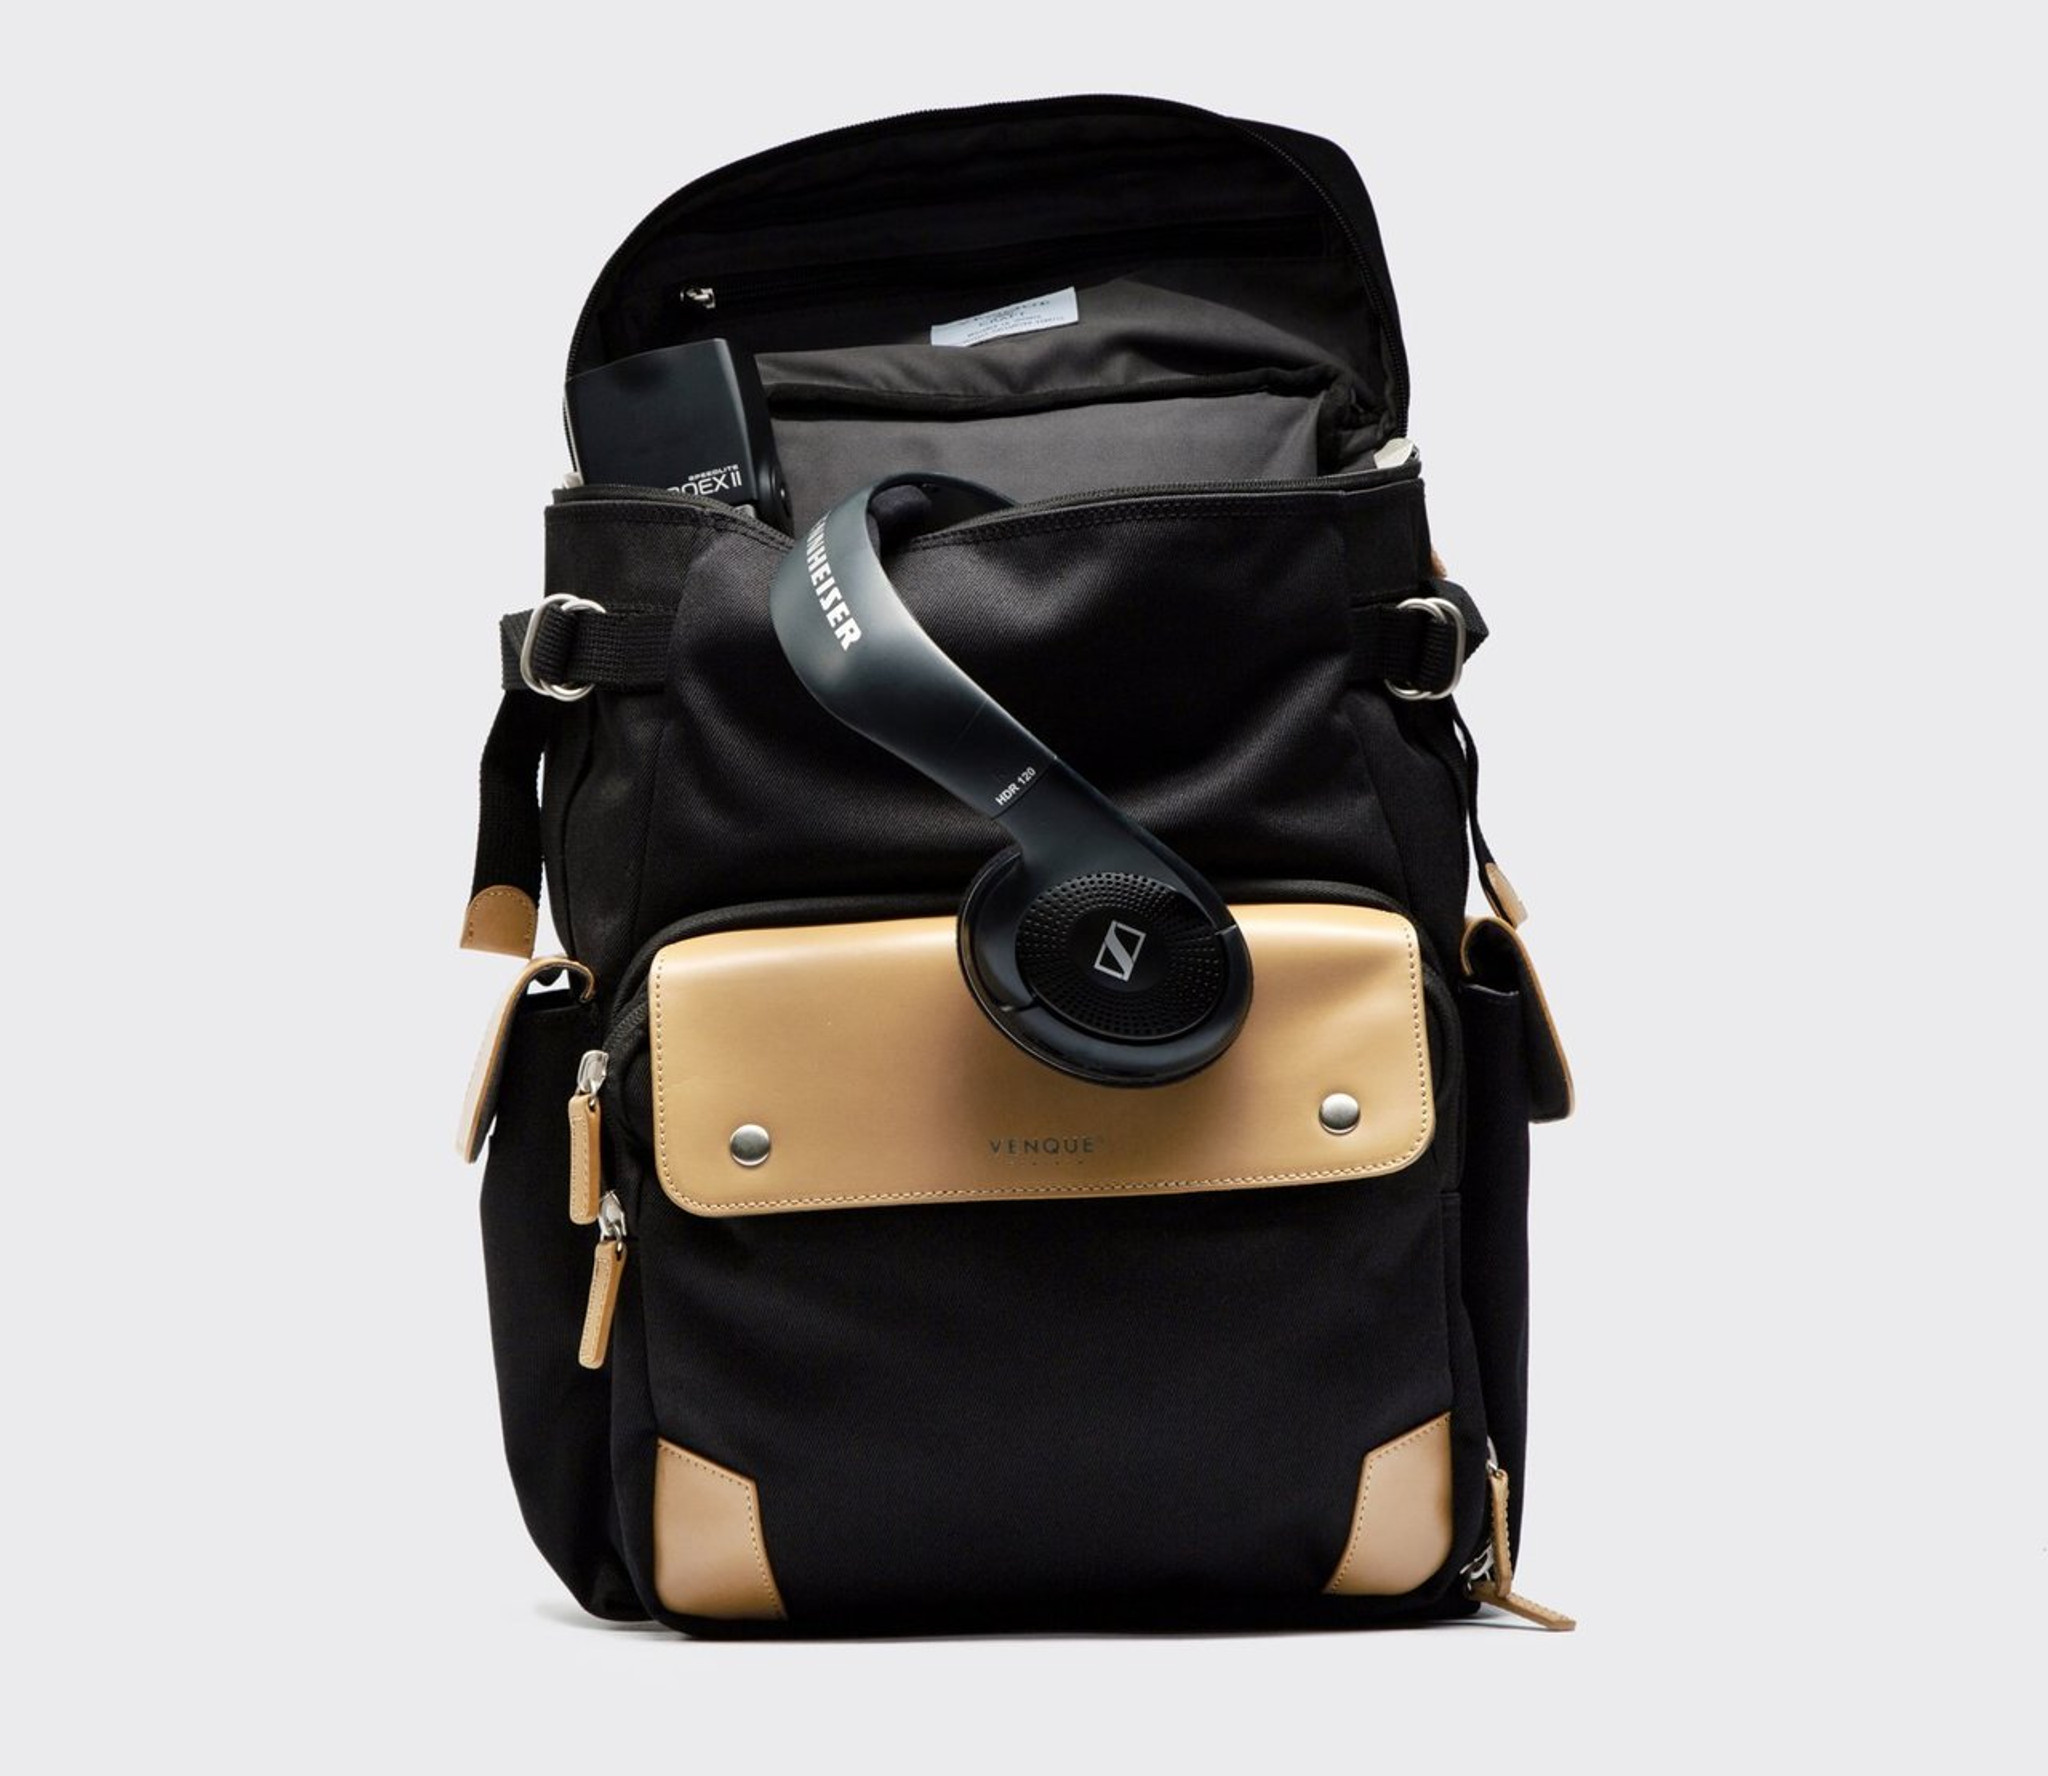 Venque Campro Black Backpack